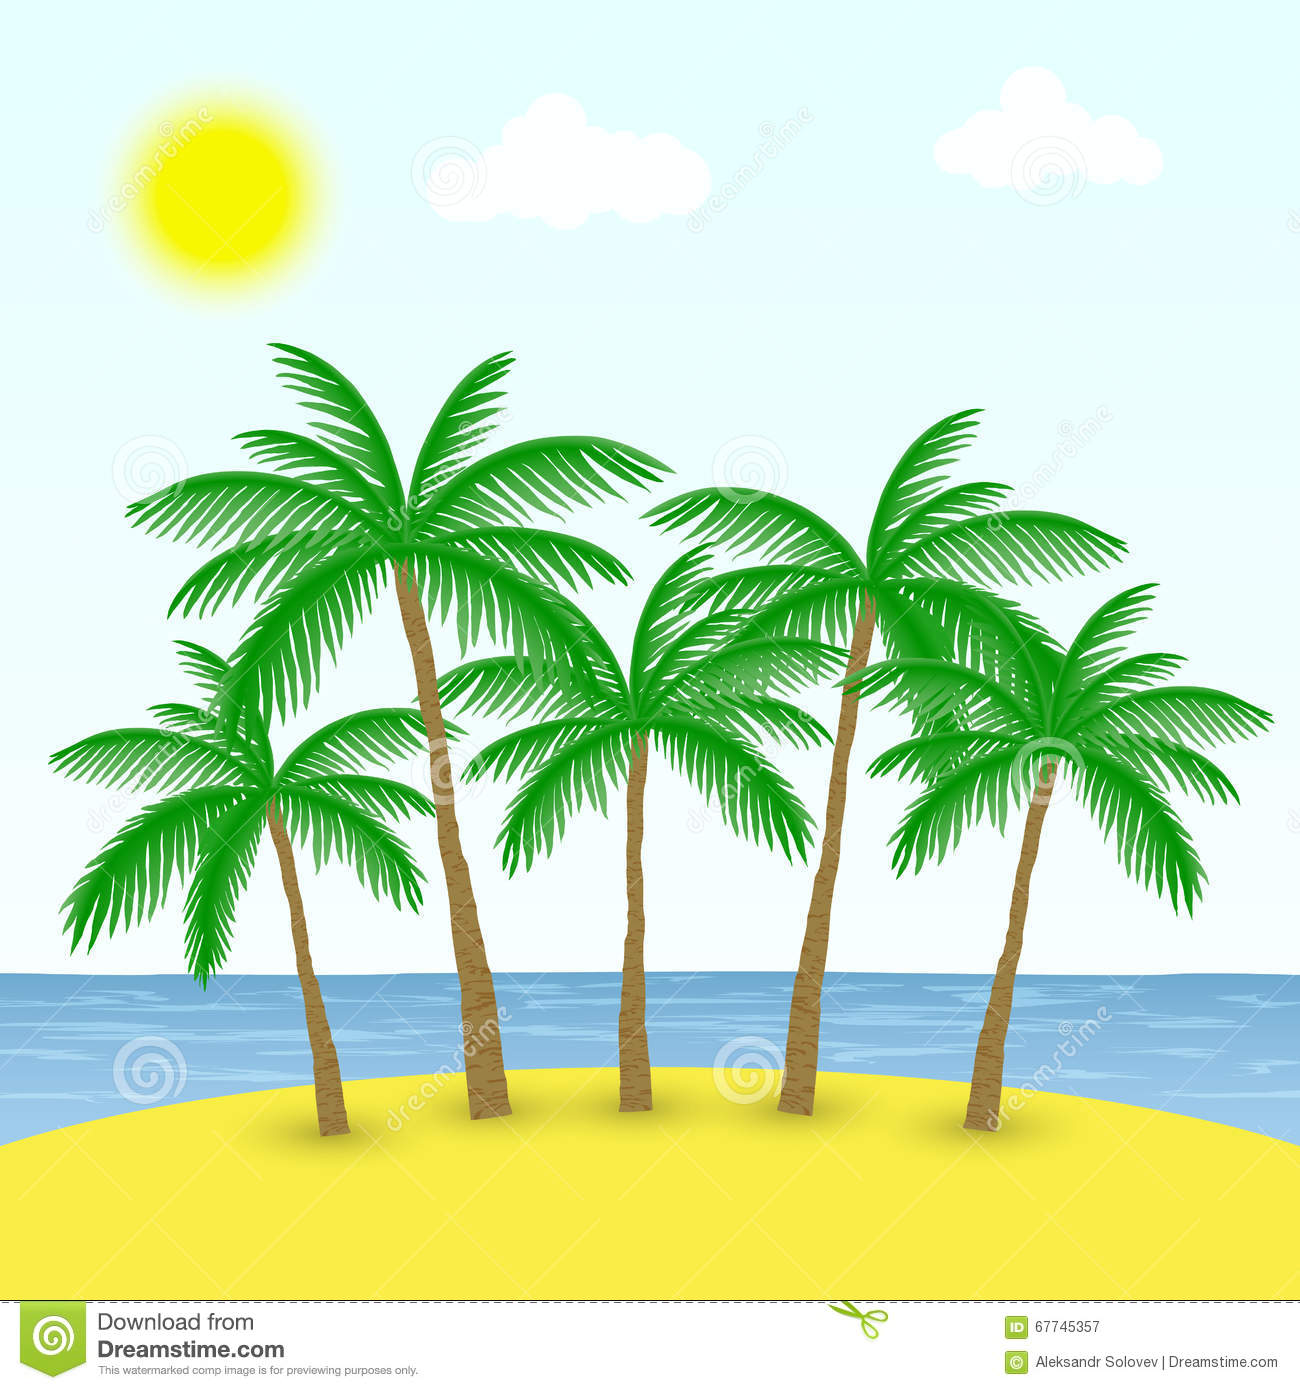 Palm Tree Beach: Palm Trees On The Beach Stock Vector. Illustration Of